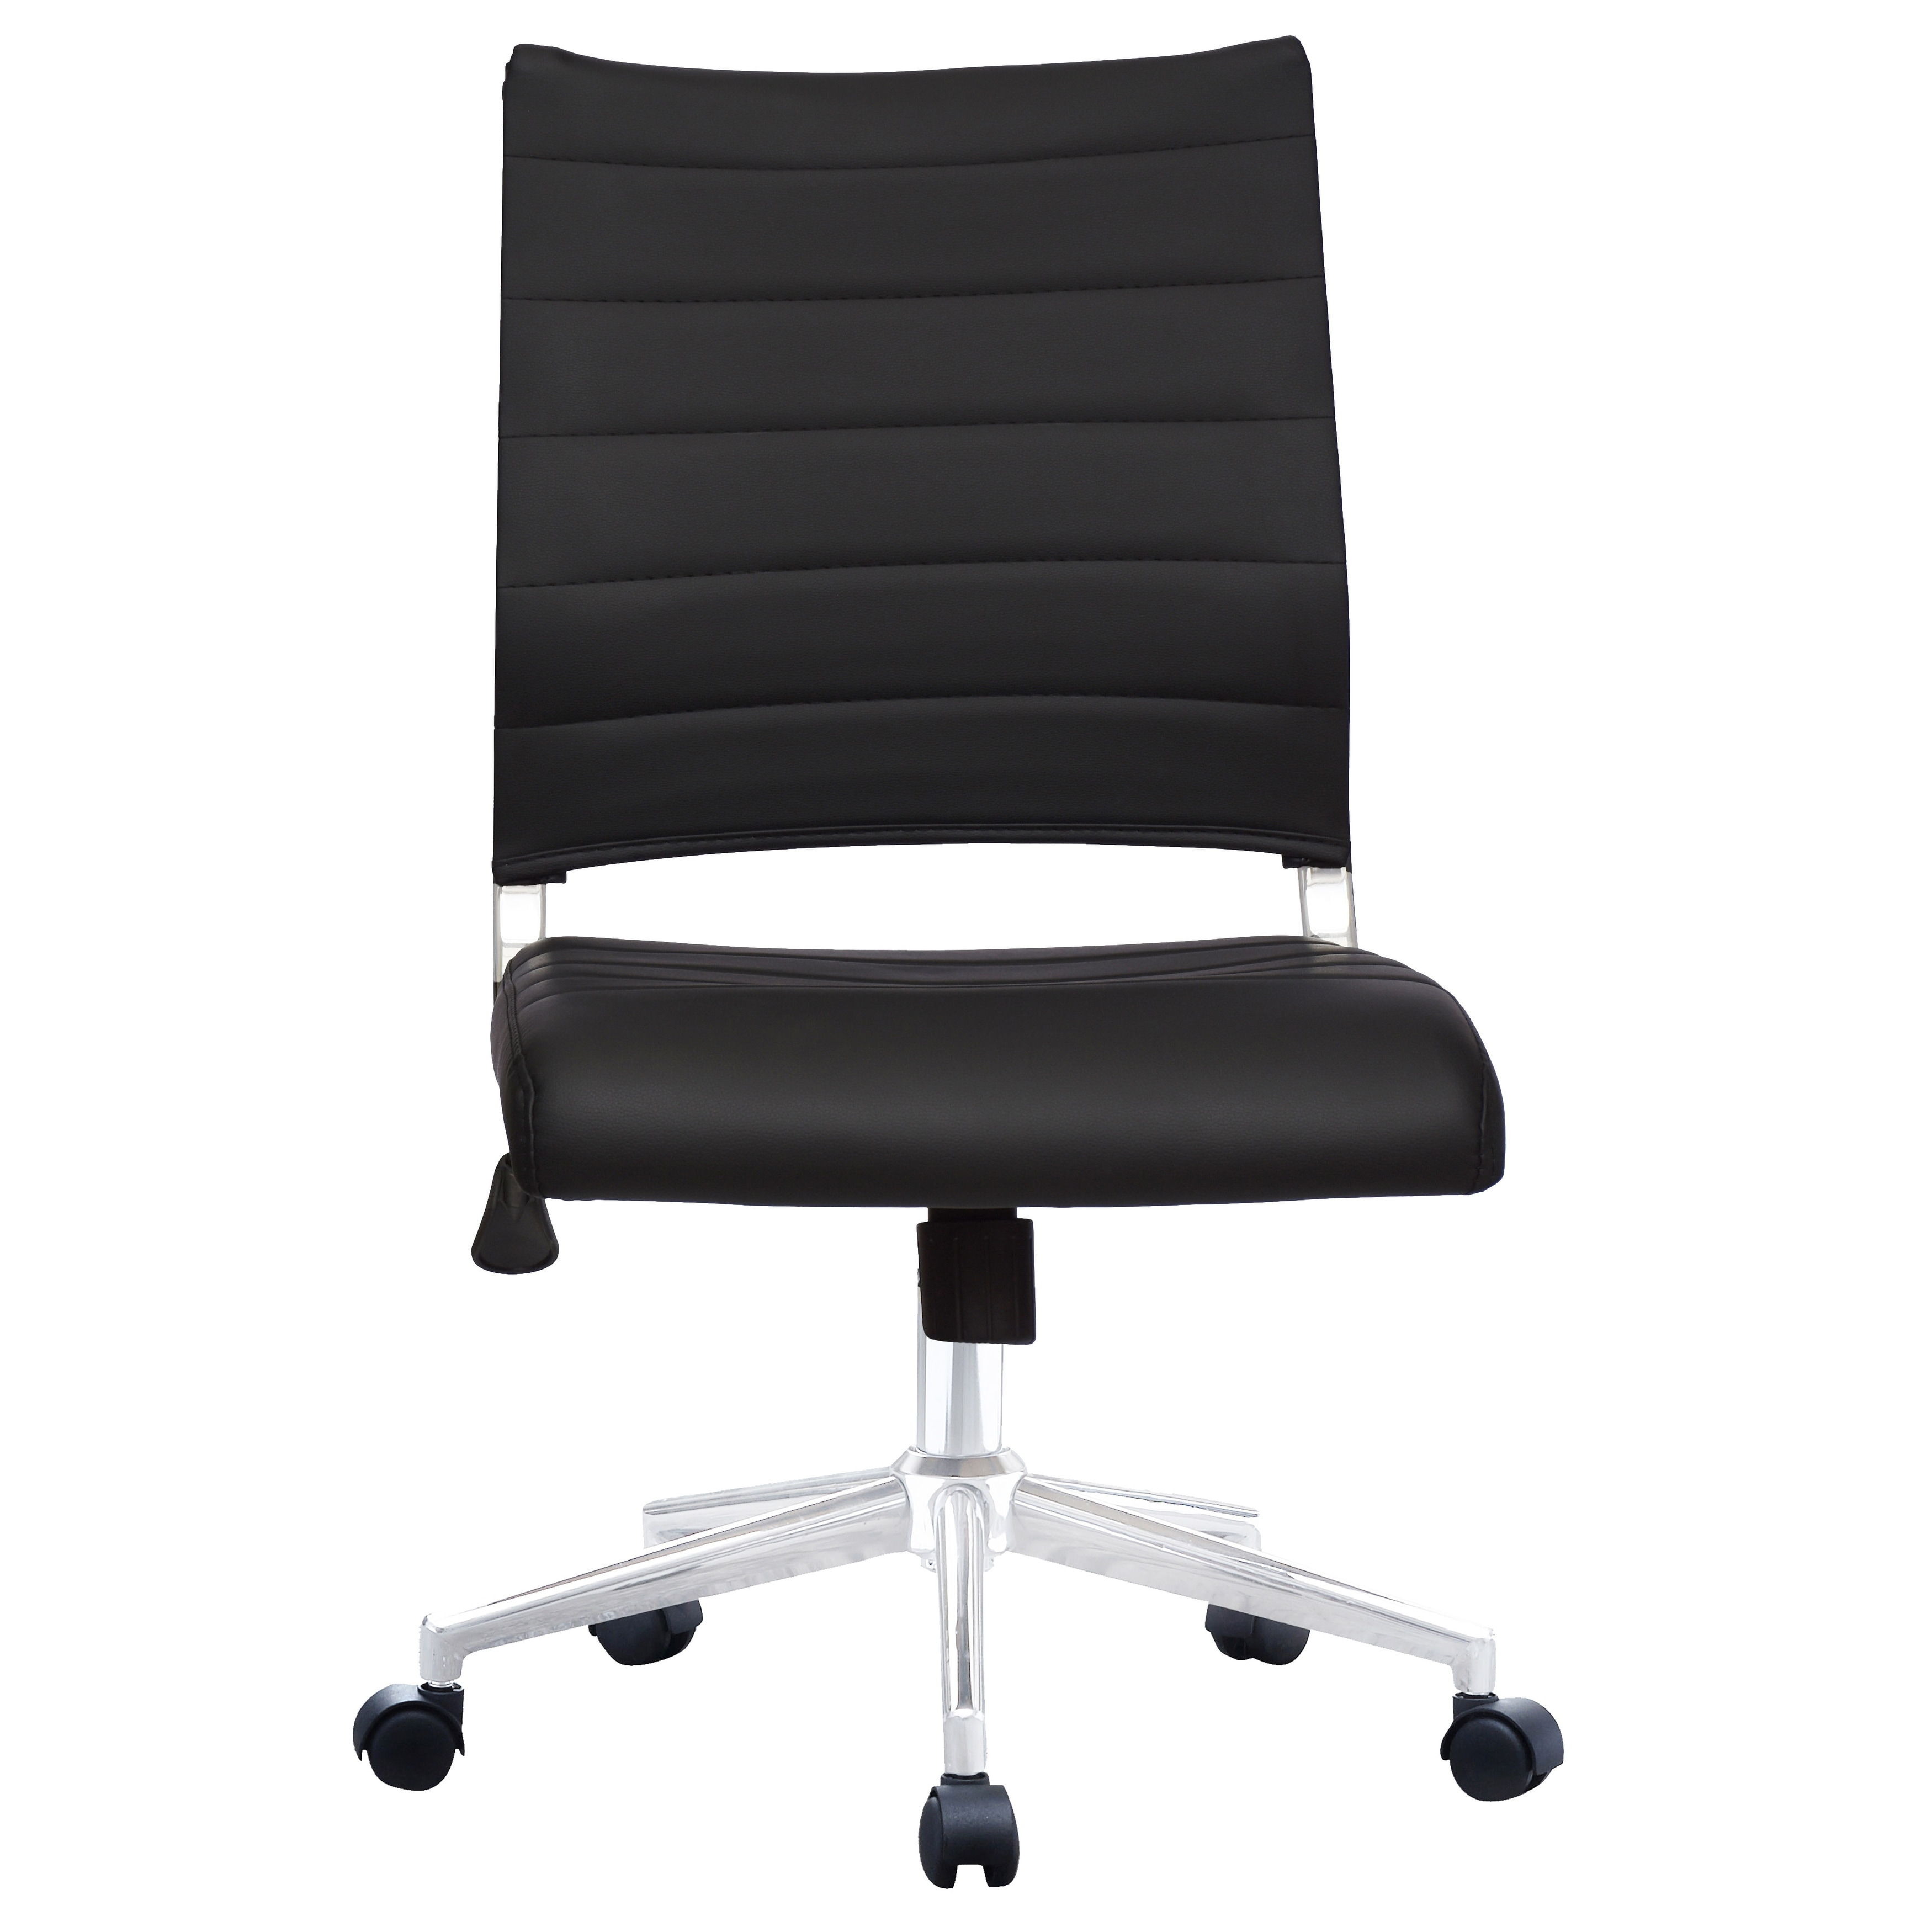 ergonomic chair without arms homedics elounger massage shop 2xhome executive mid back pu leather office armless side no tilt with wheels padded seat cushion